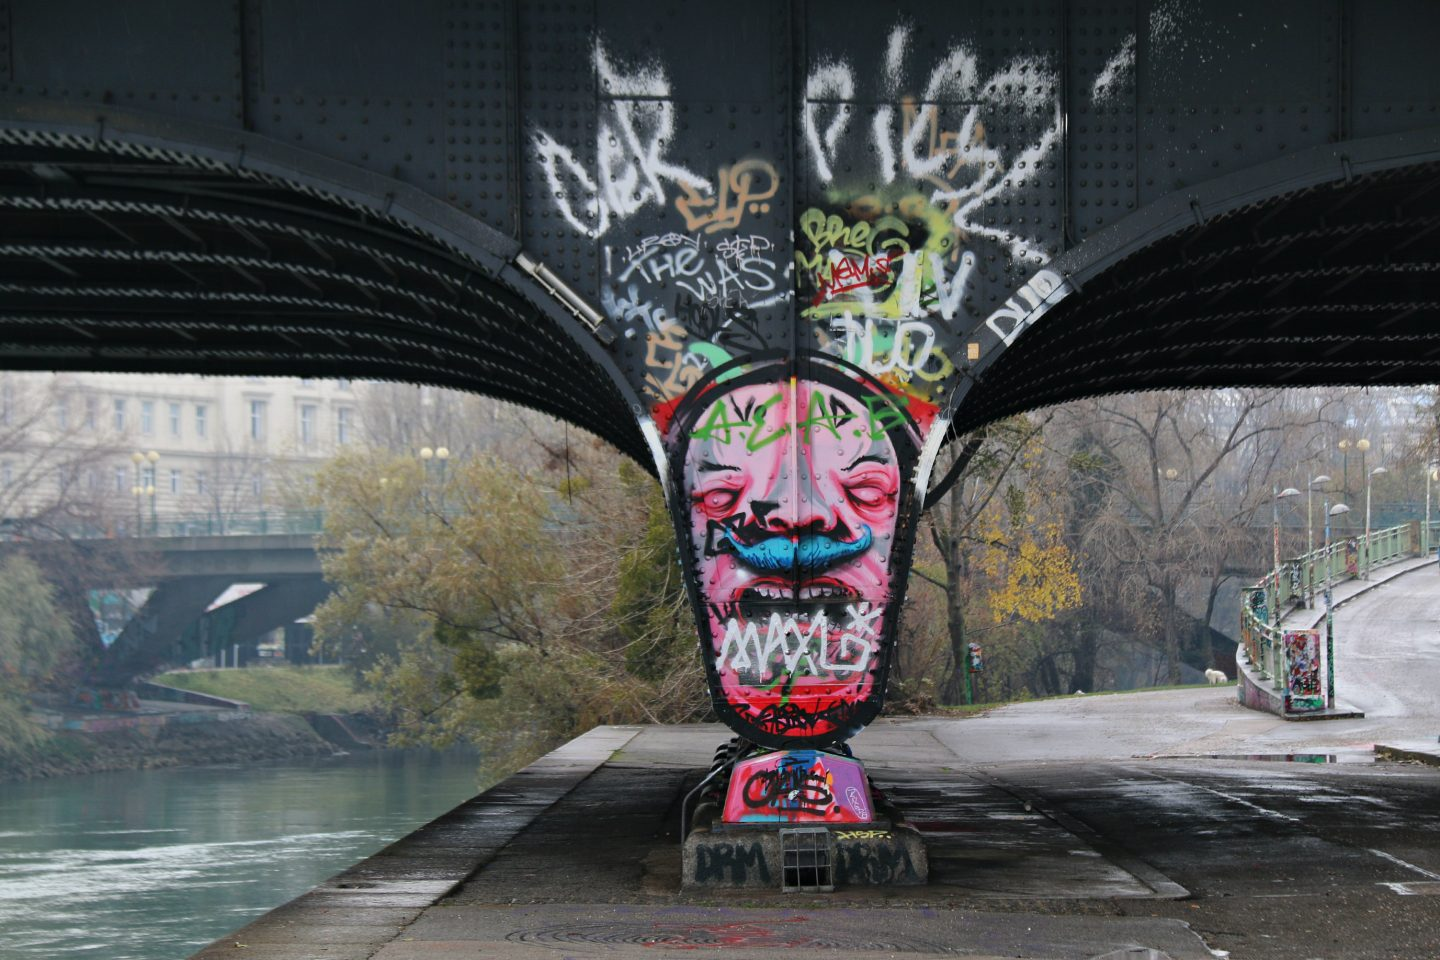 Vienna street art by the canal 25